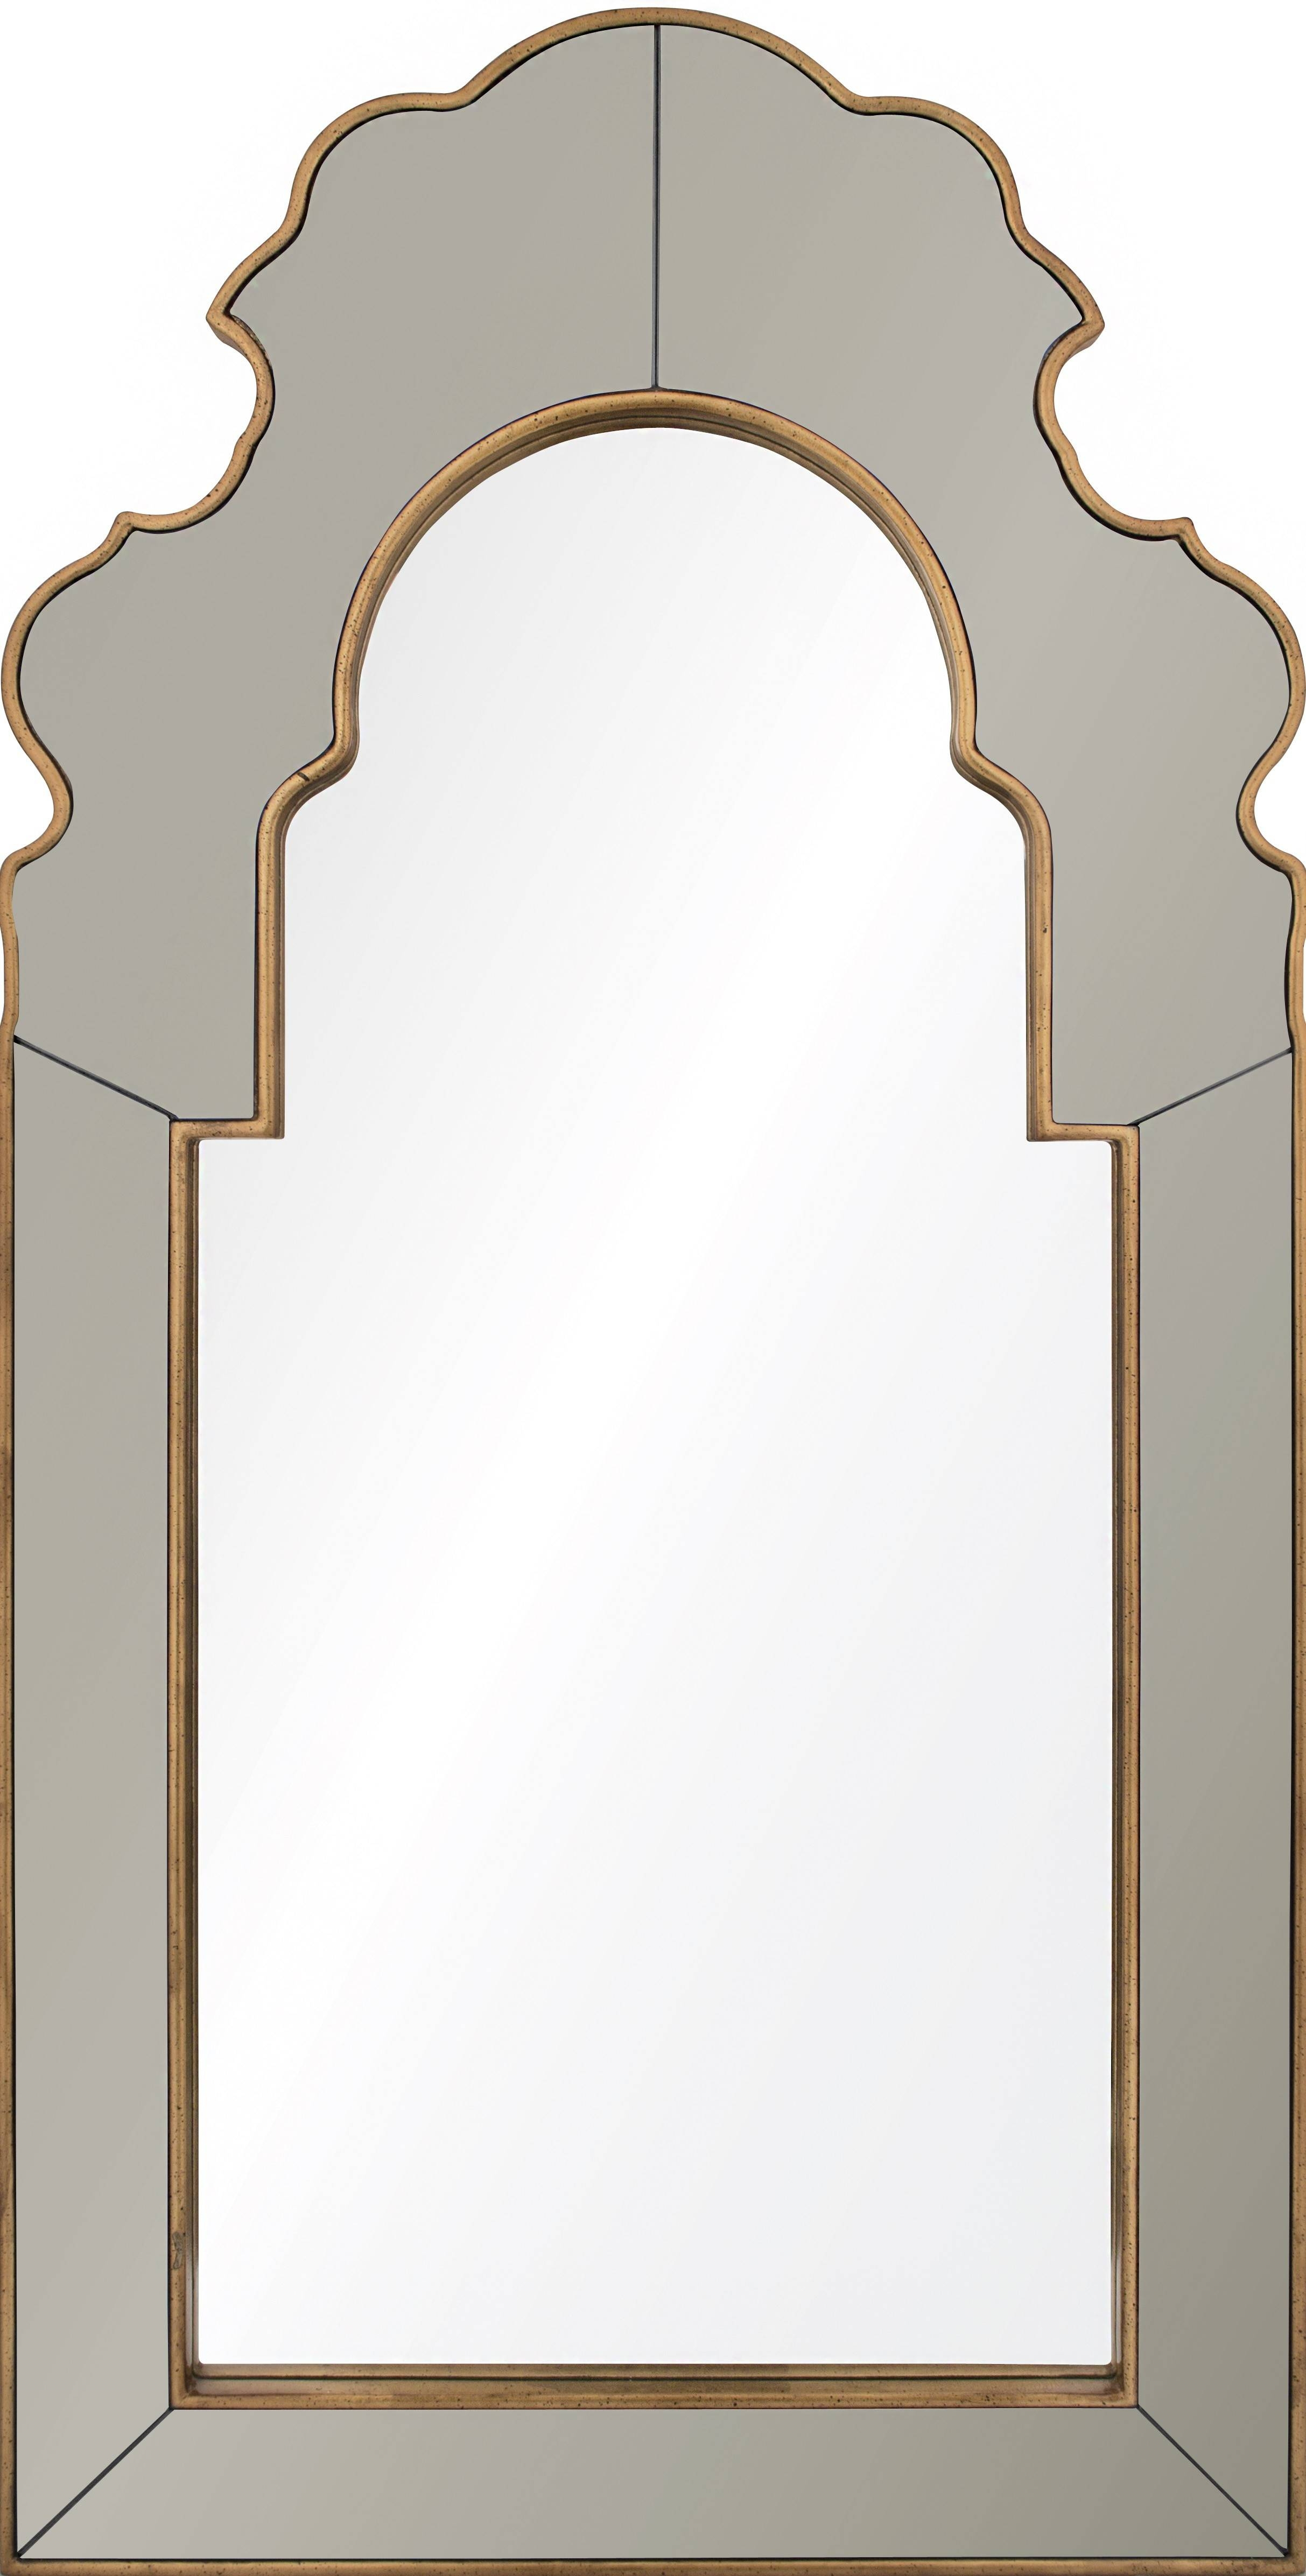 The Well Appointed House - Luxuries For The Home - The Well inside Gold Arch Mirrors (Image 21 of 25)